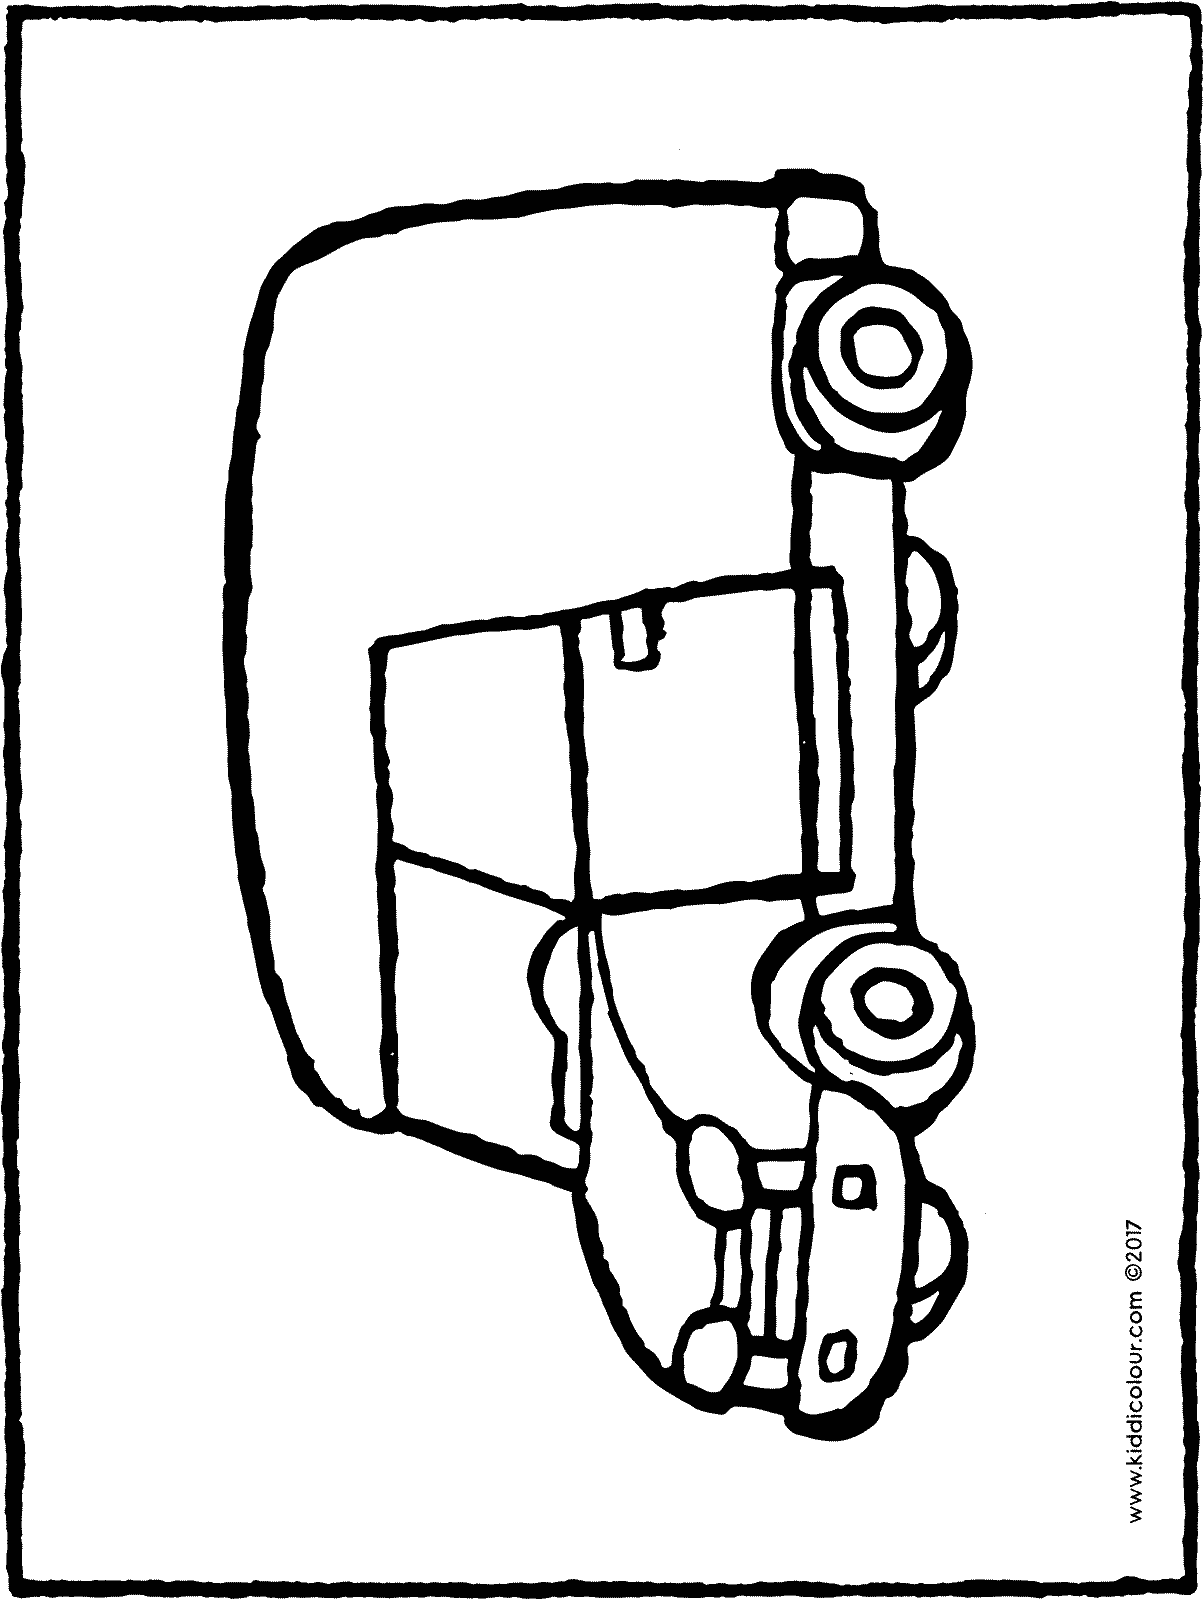 small van colouring page page drawing picture 01H